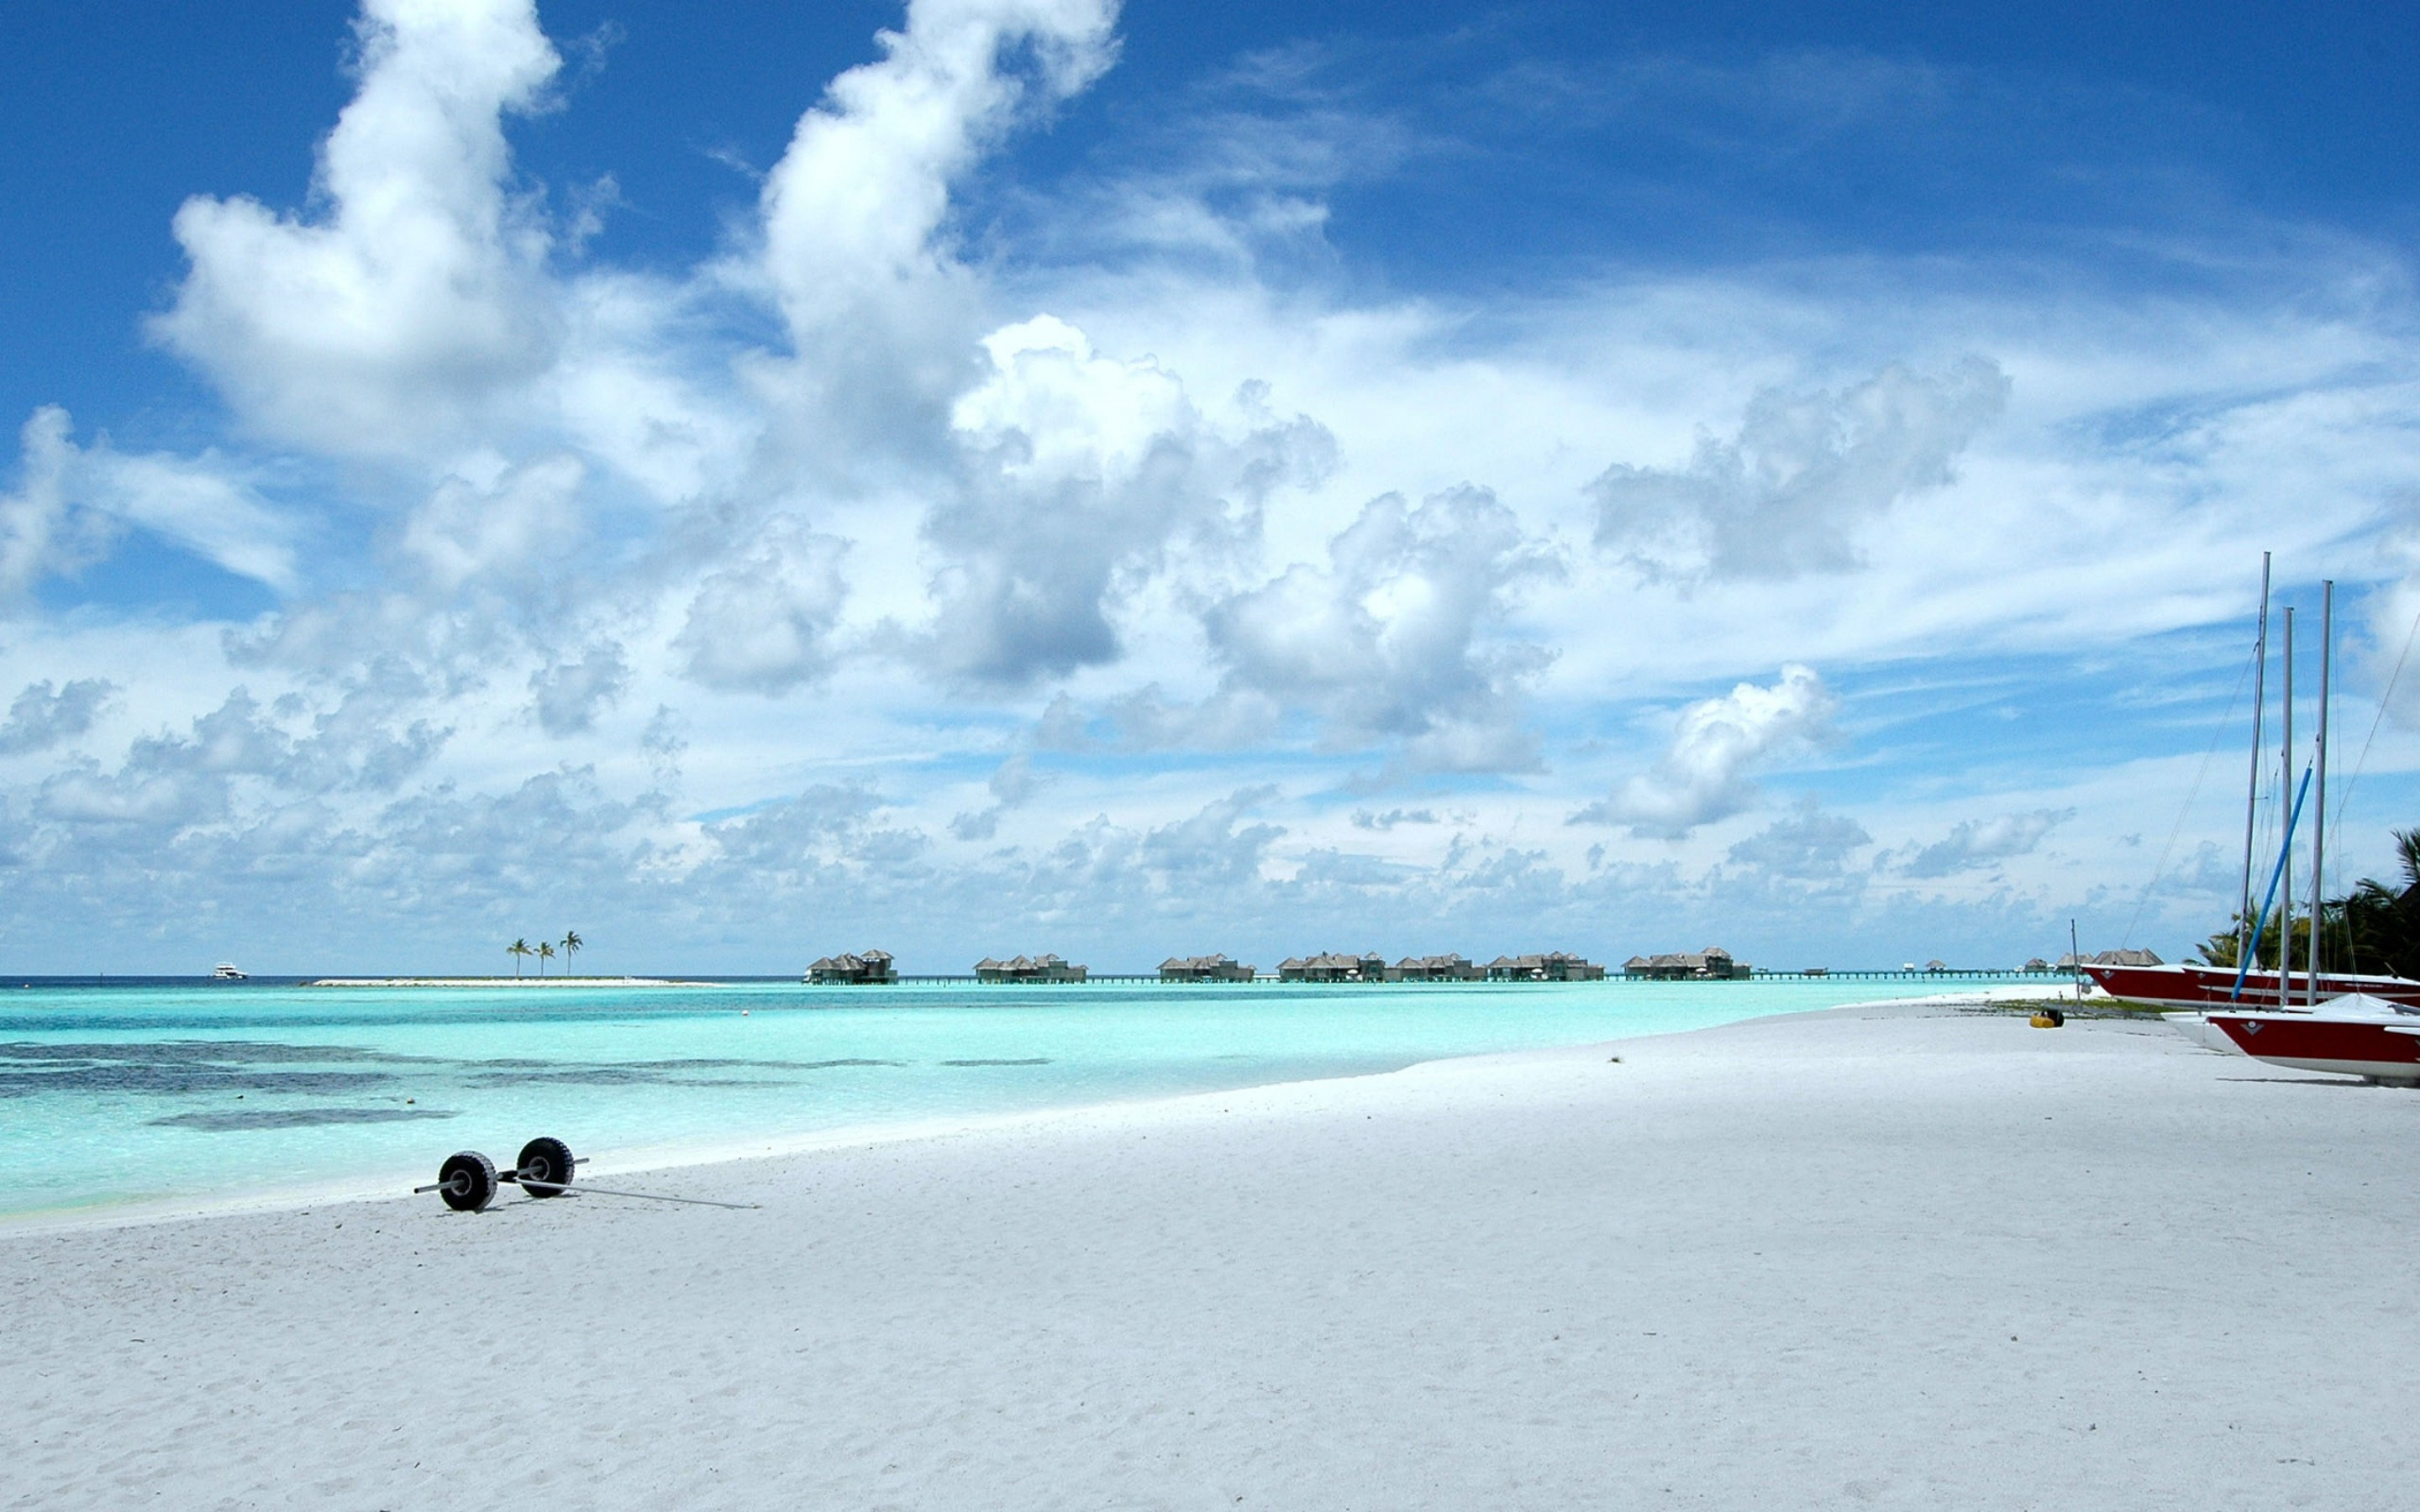 Maldives Island Wallpaper Beach For Desktop 5 1923 Wallpaper 2880x1800